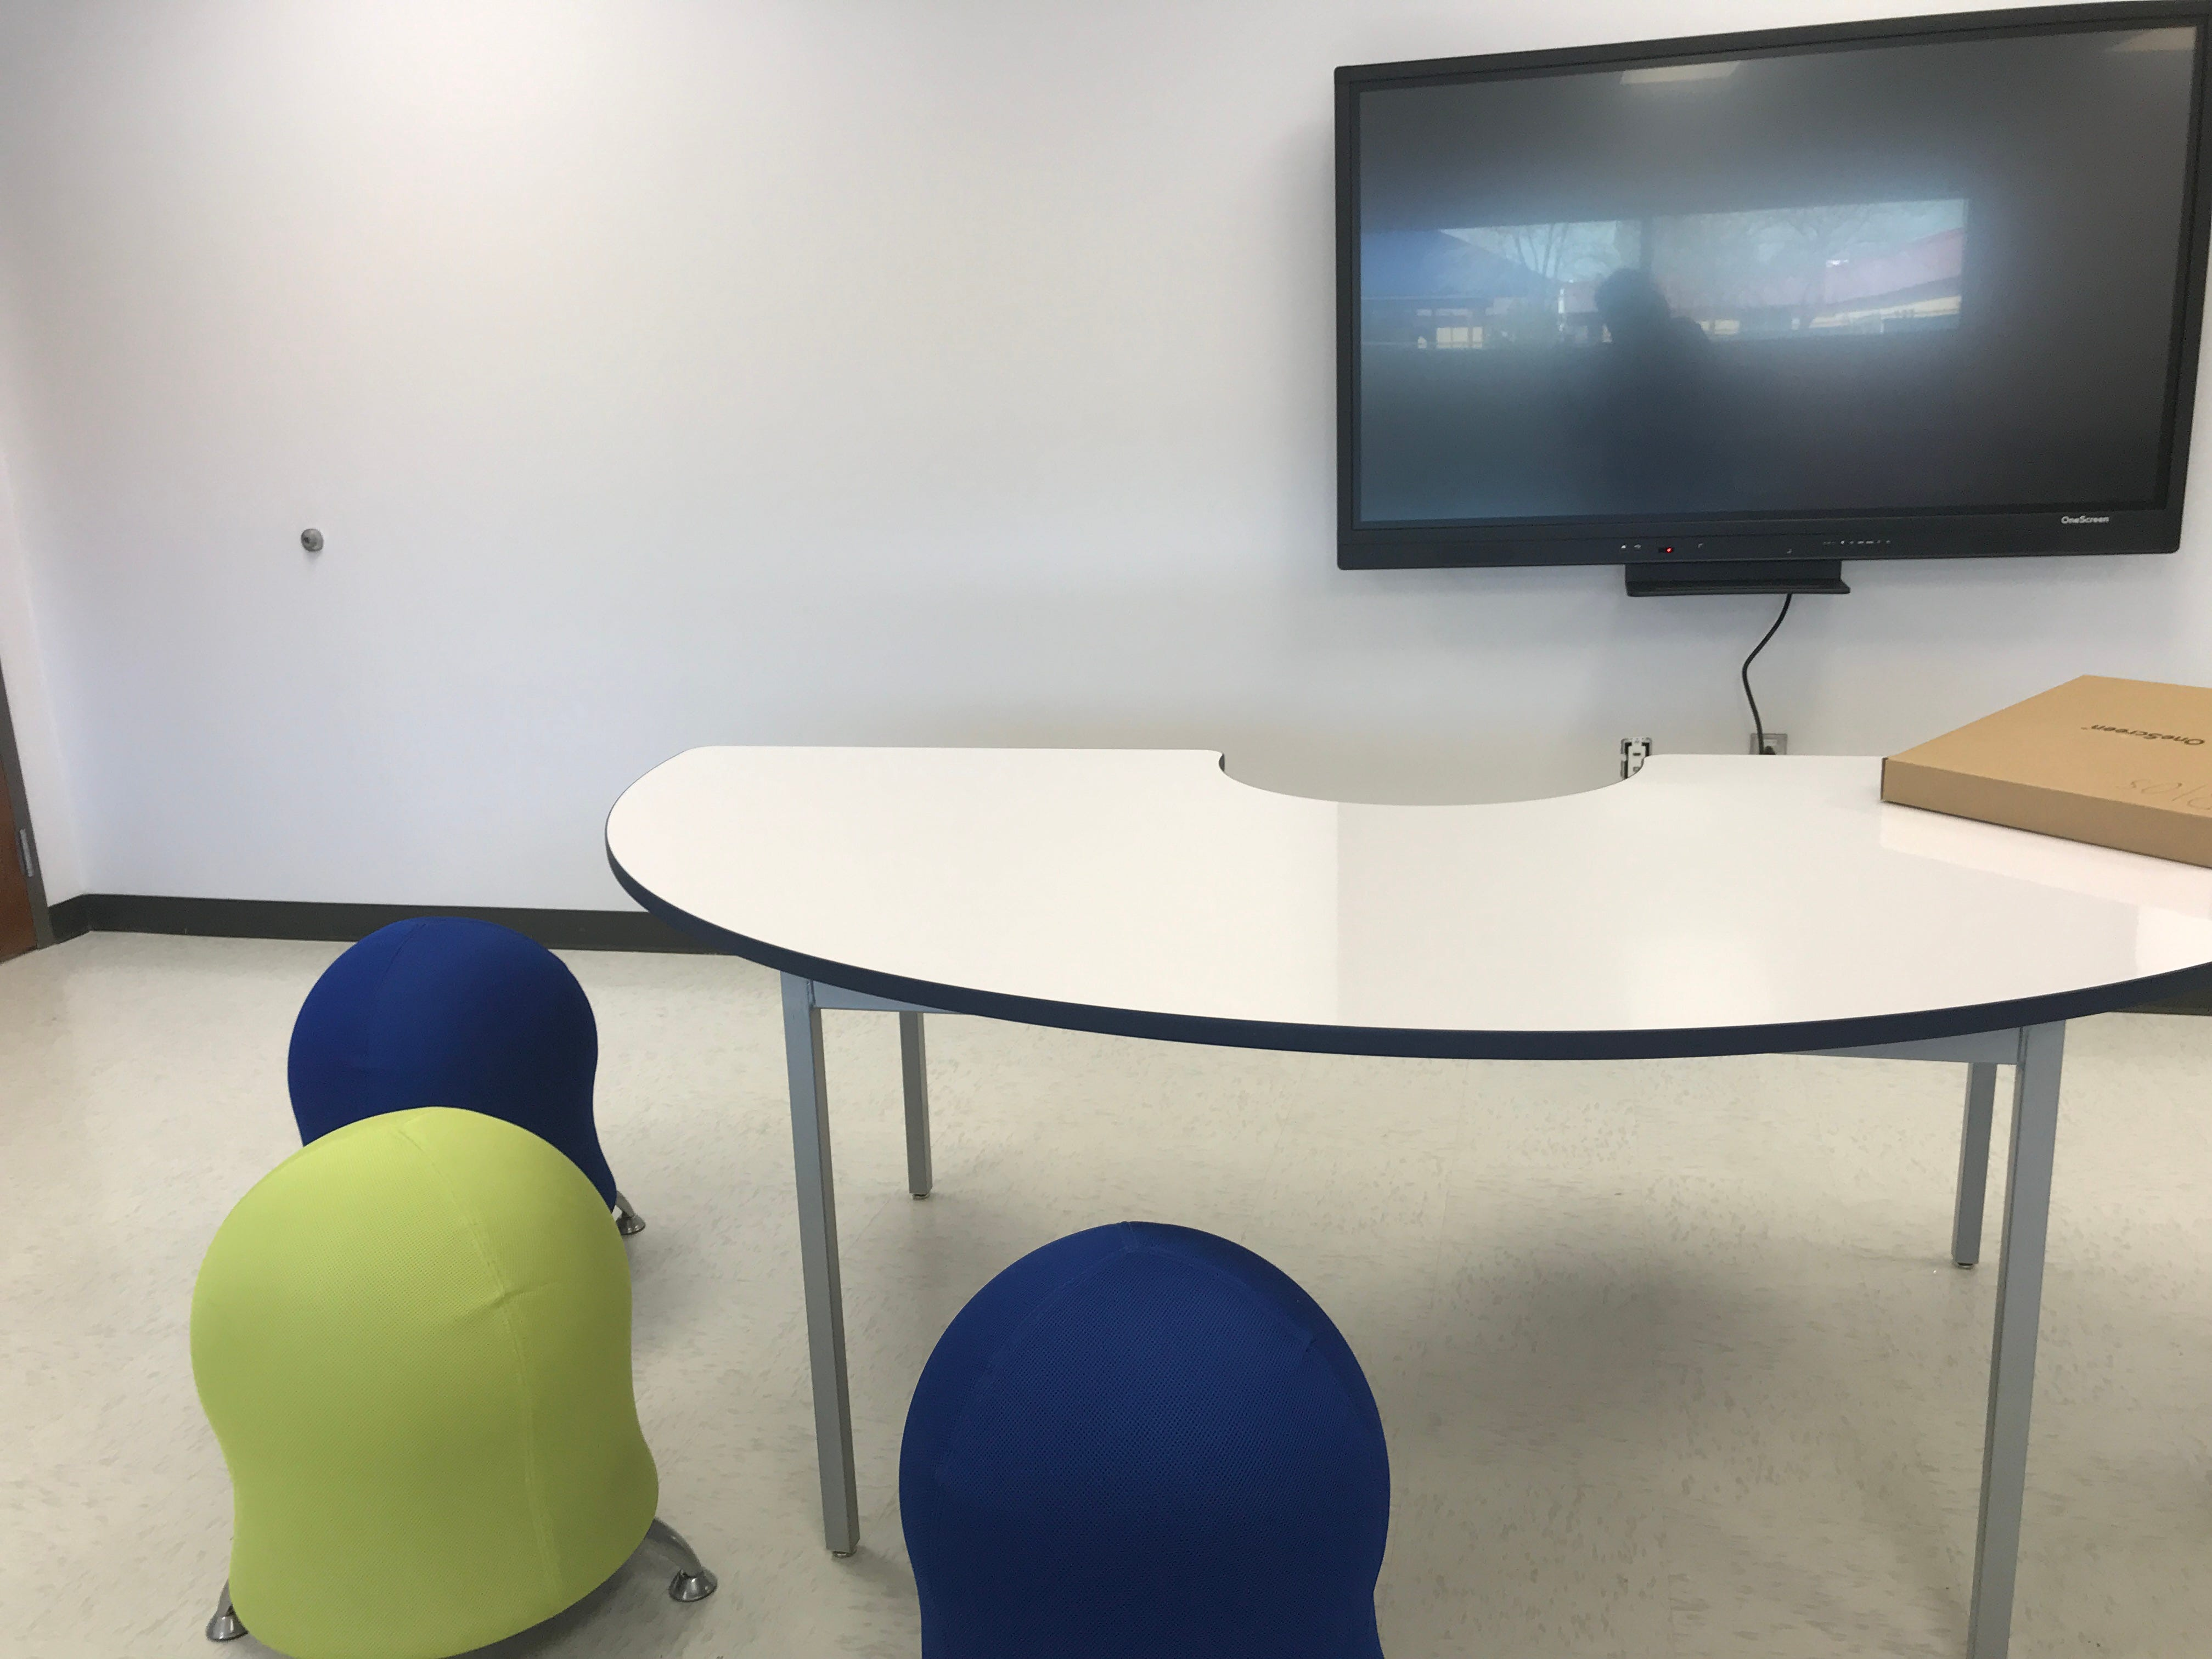 The Specialized Support Alternative Testing classroom which assist special needs students has state of the art technology and balance chairs.